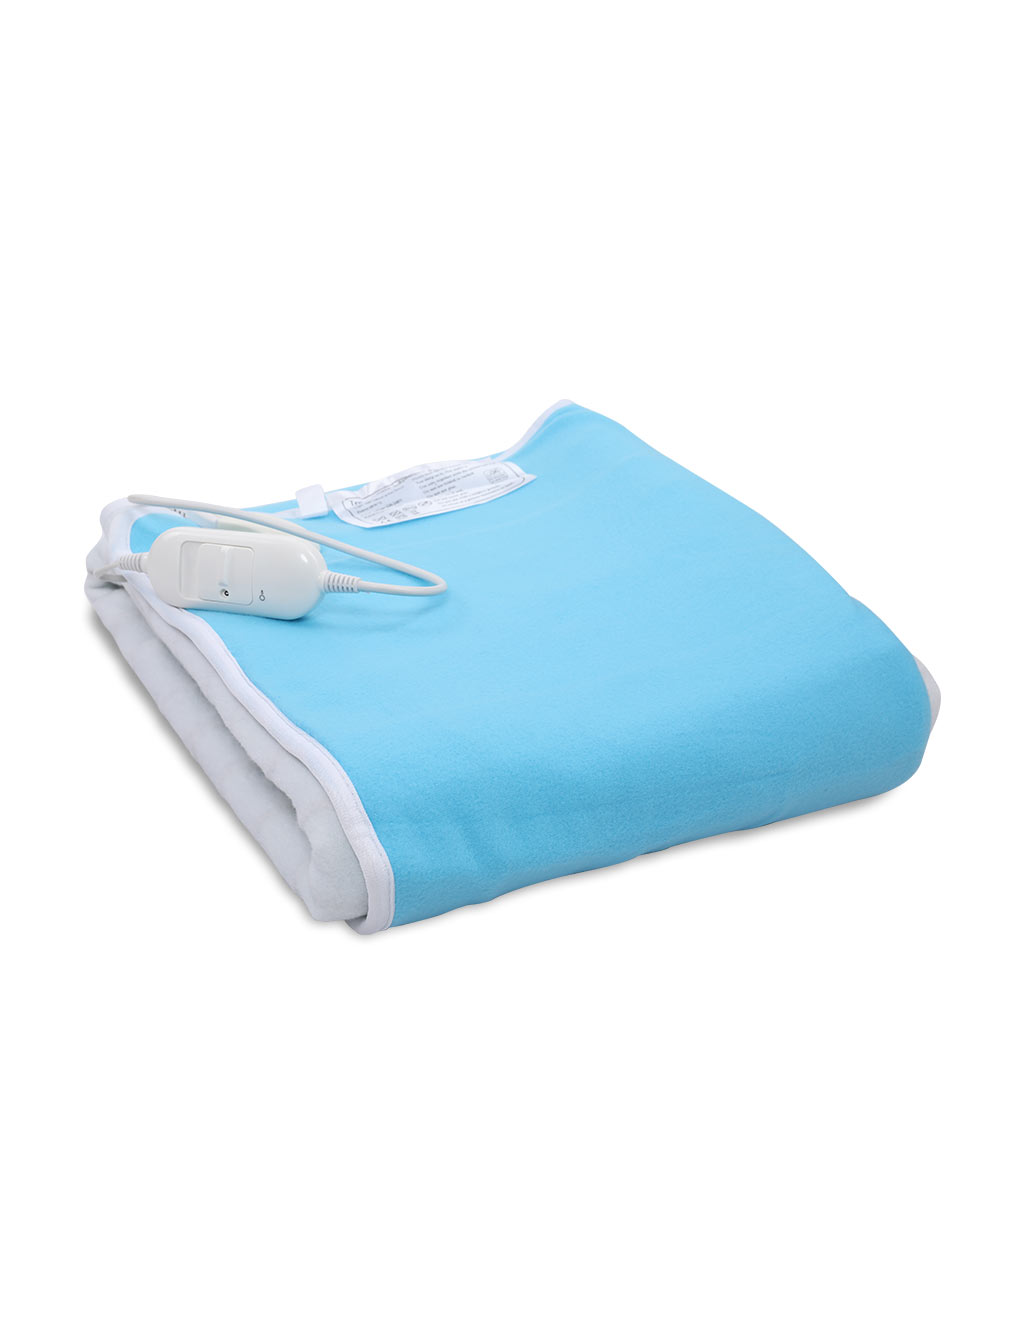 Electric Heated Double Bed Blanket